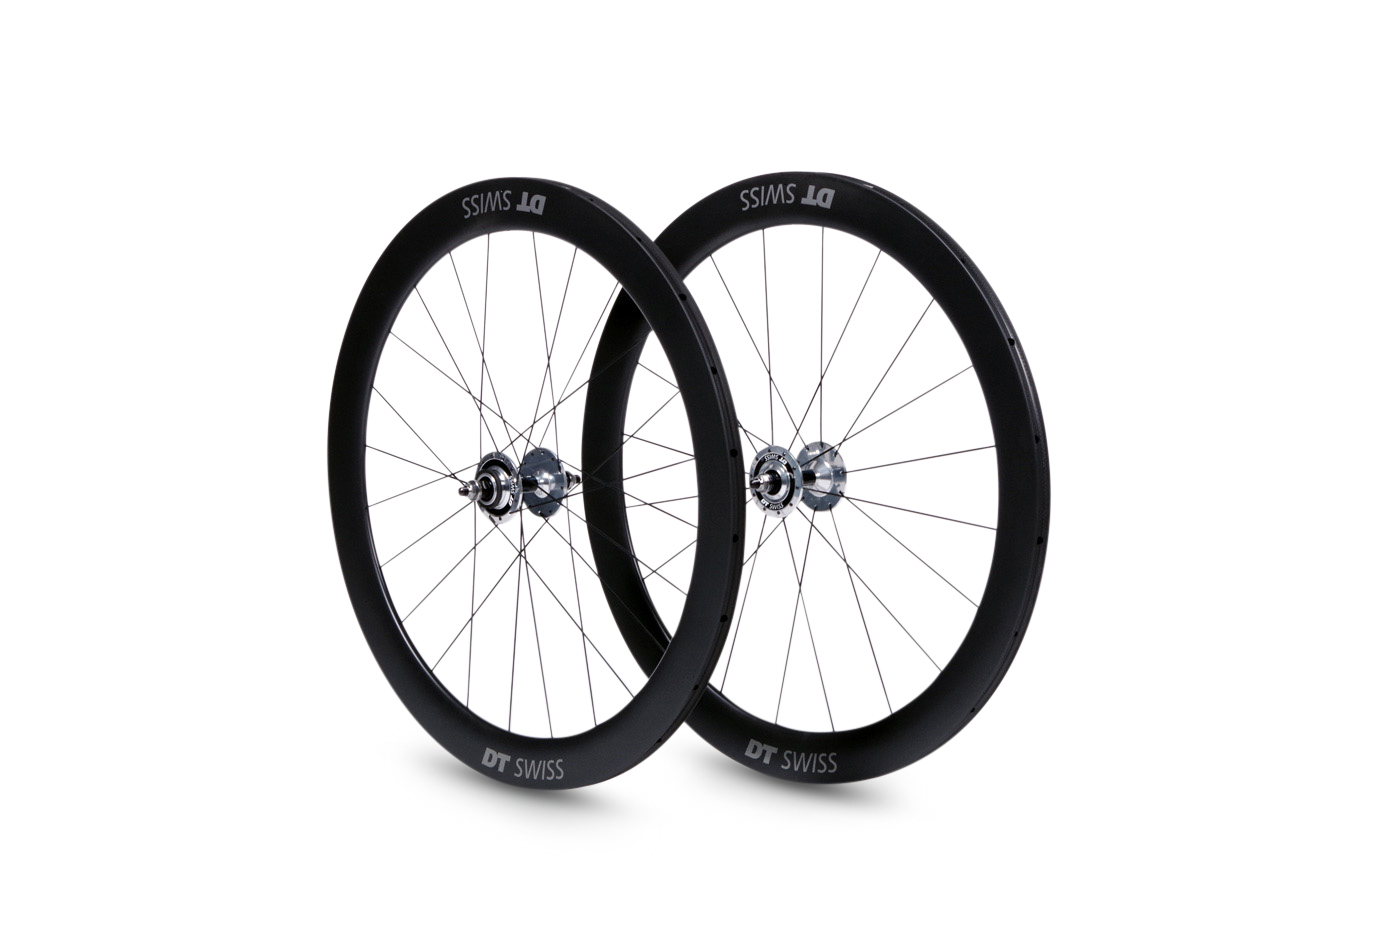 DT Swiss 01 - DT Swiss wheels - Now available at 8bar bikes